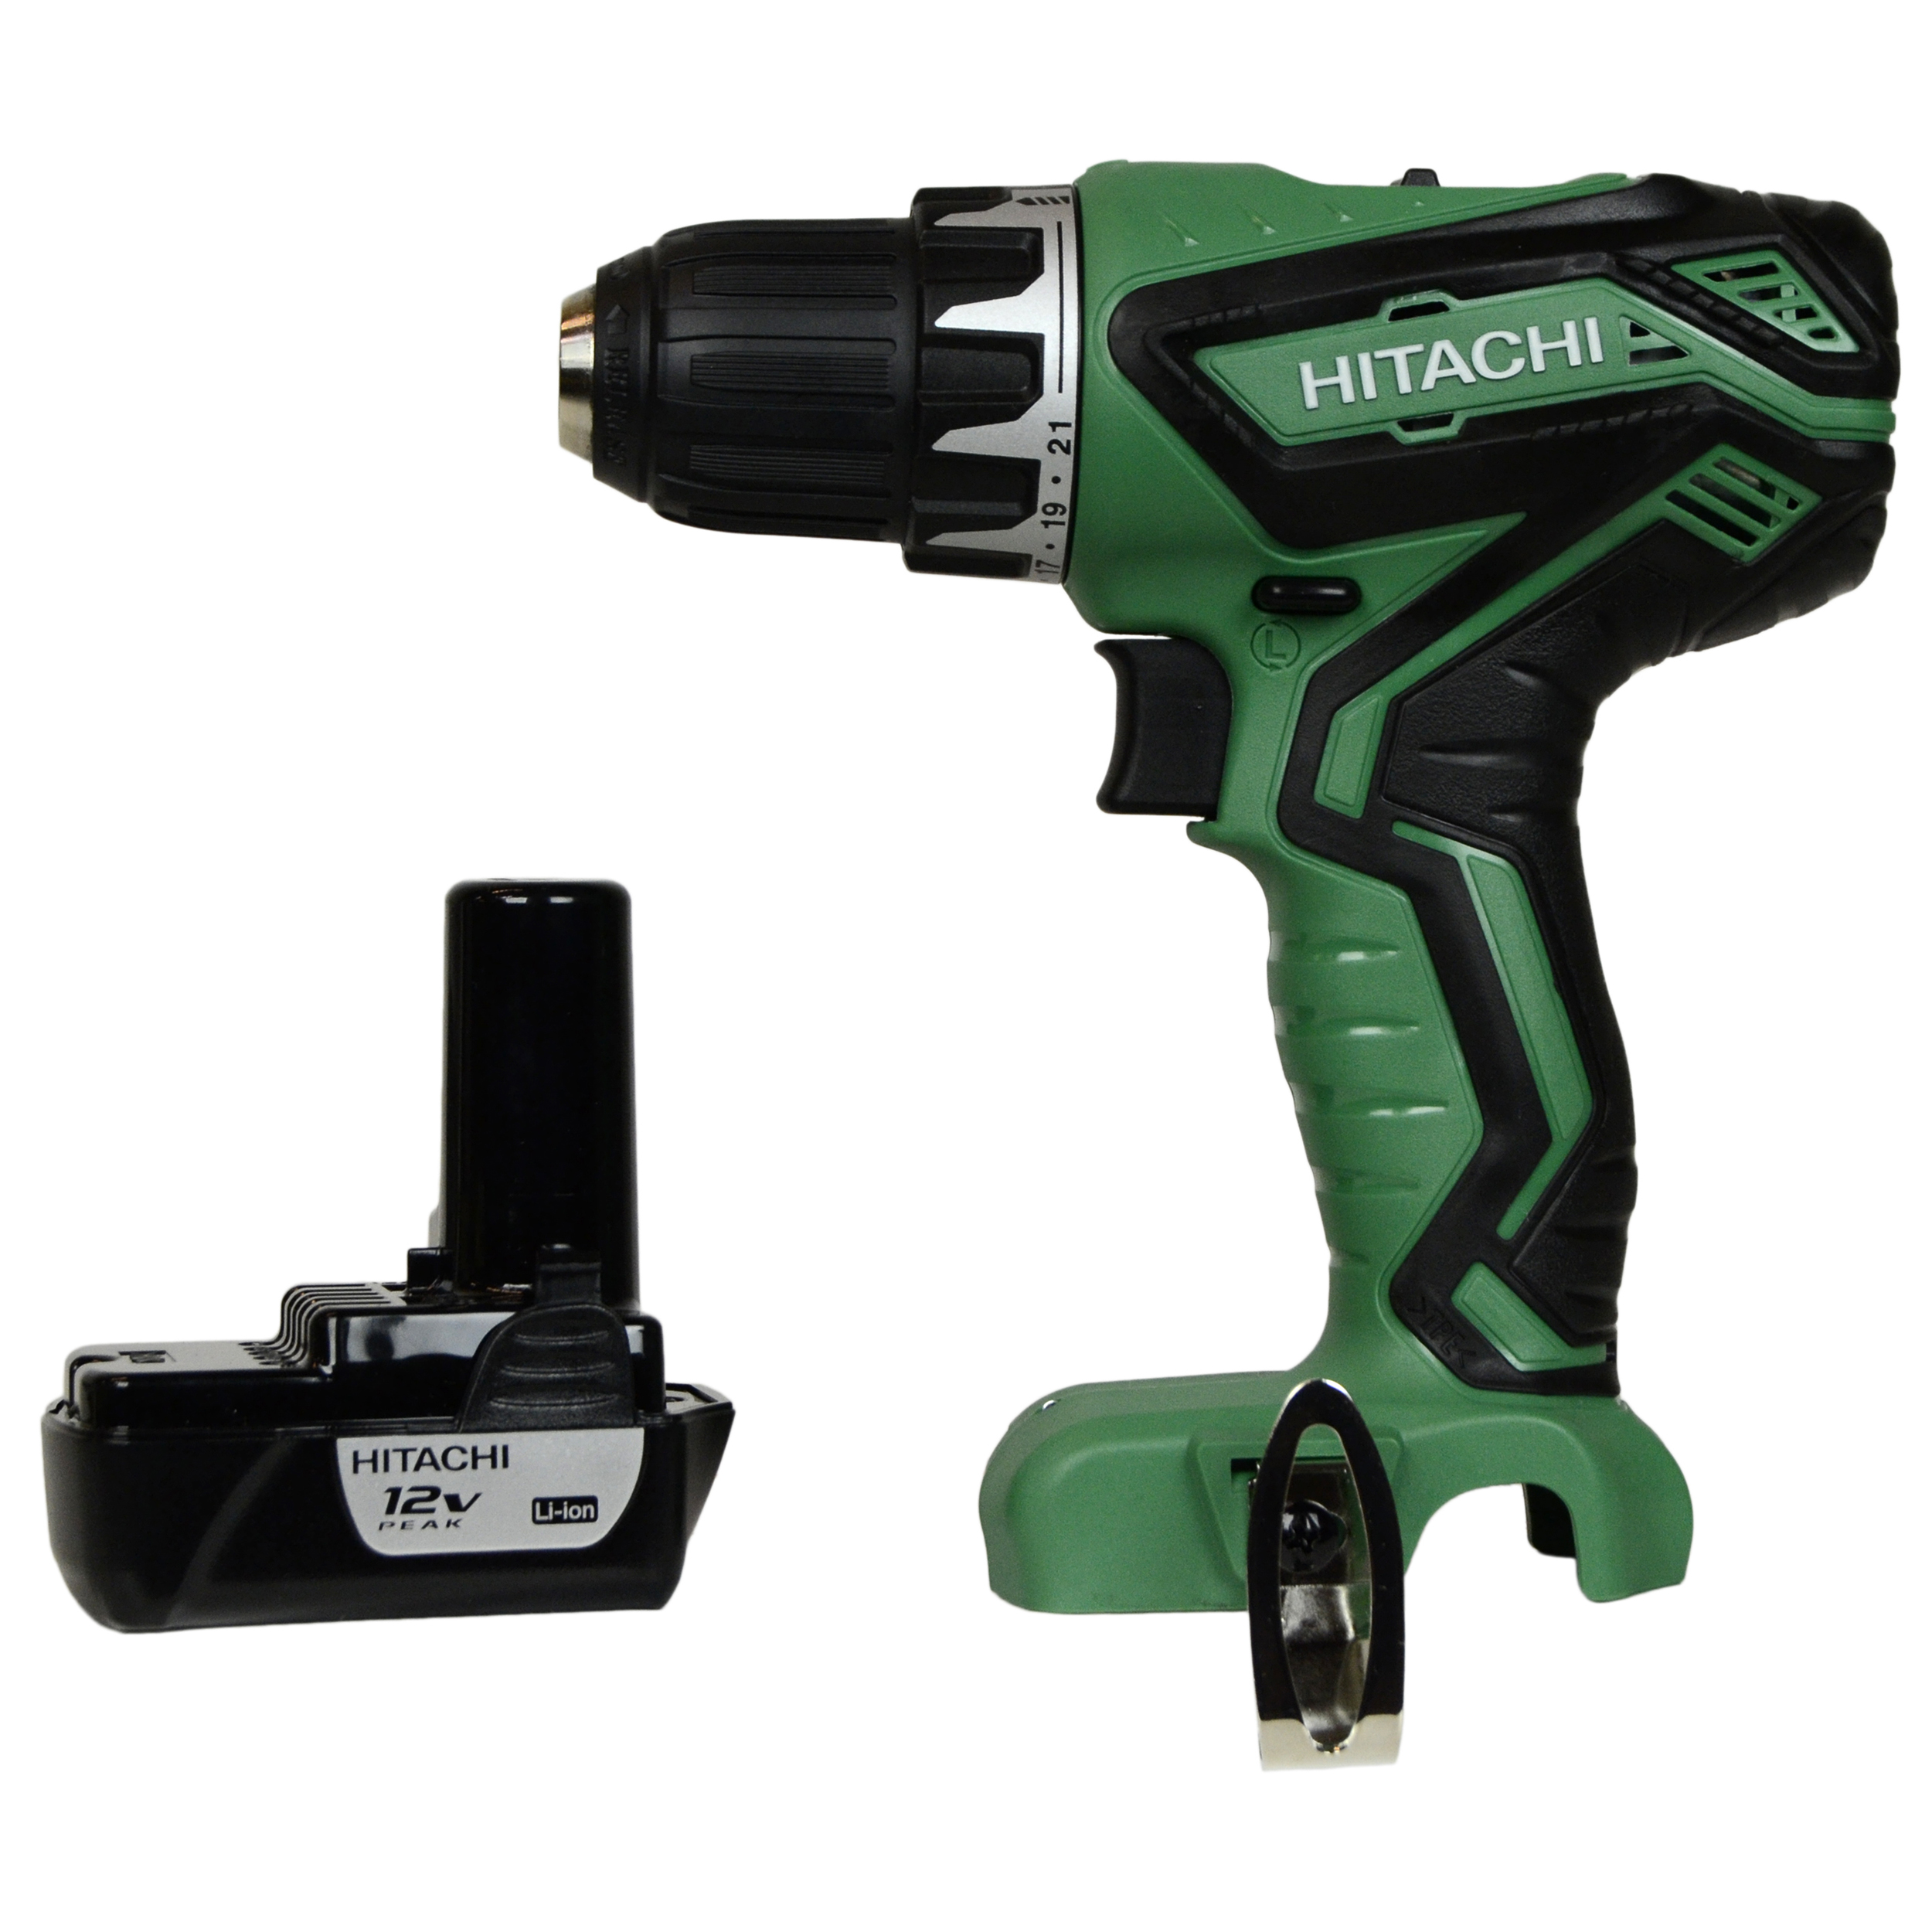 """Hitachi Power Tools DS10DFL2 12V Lithium-Ion 3/8"""" Drill Driver & One BCL1015S 12V Lithium-Ion Battery"""